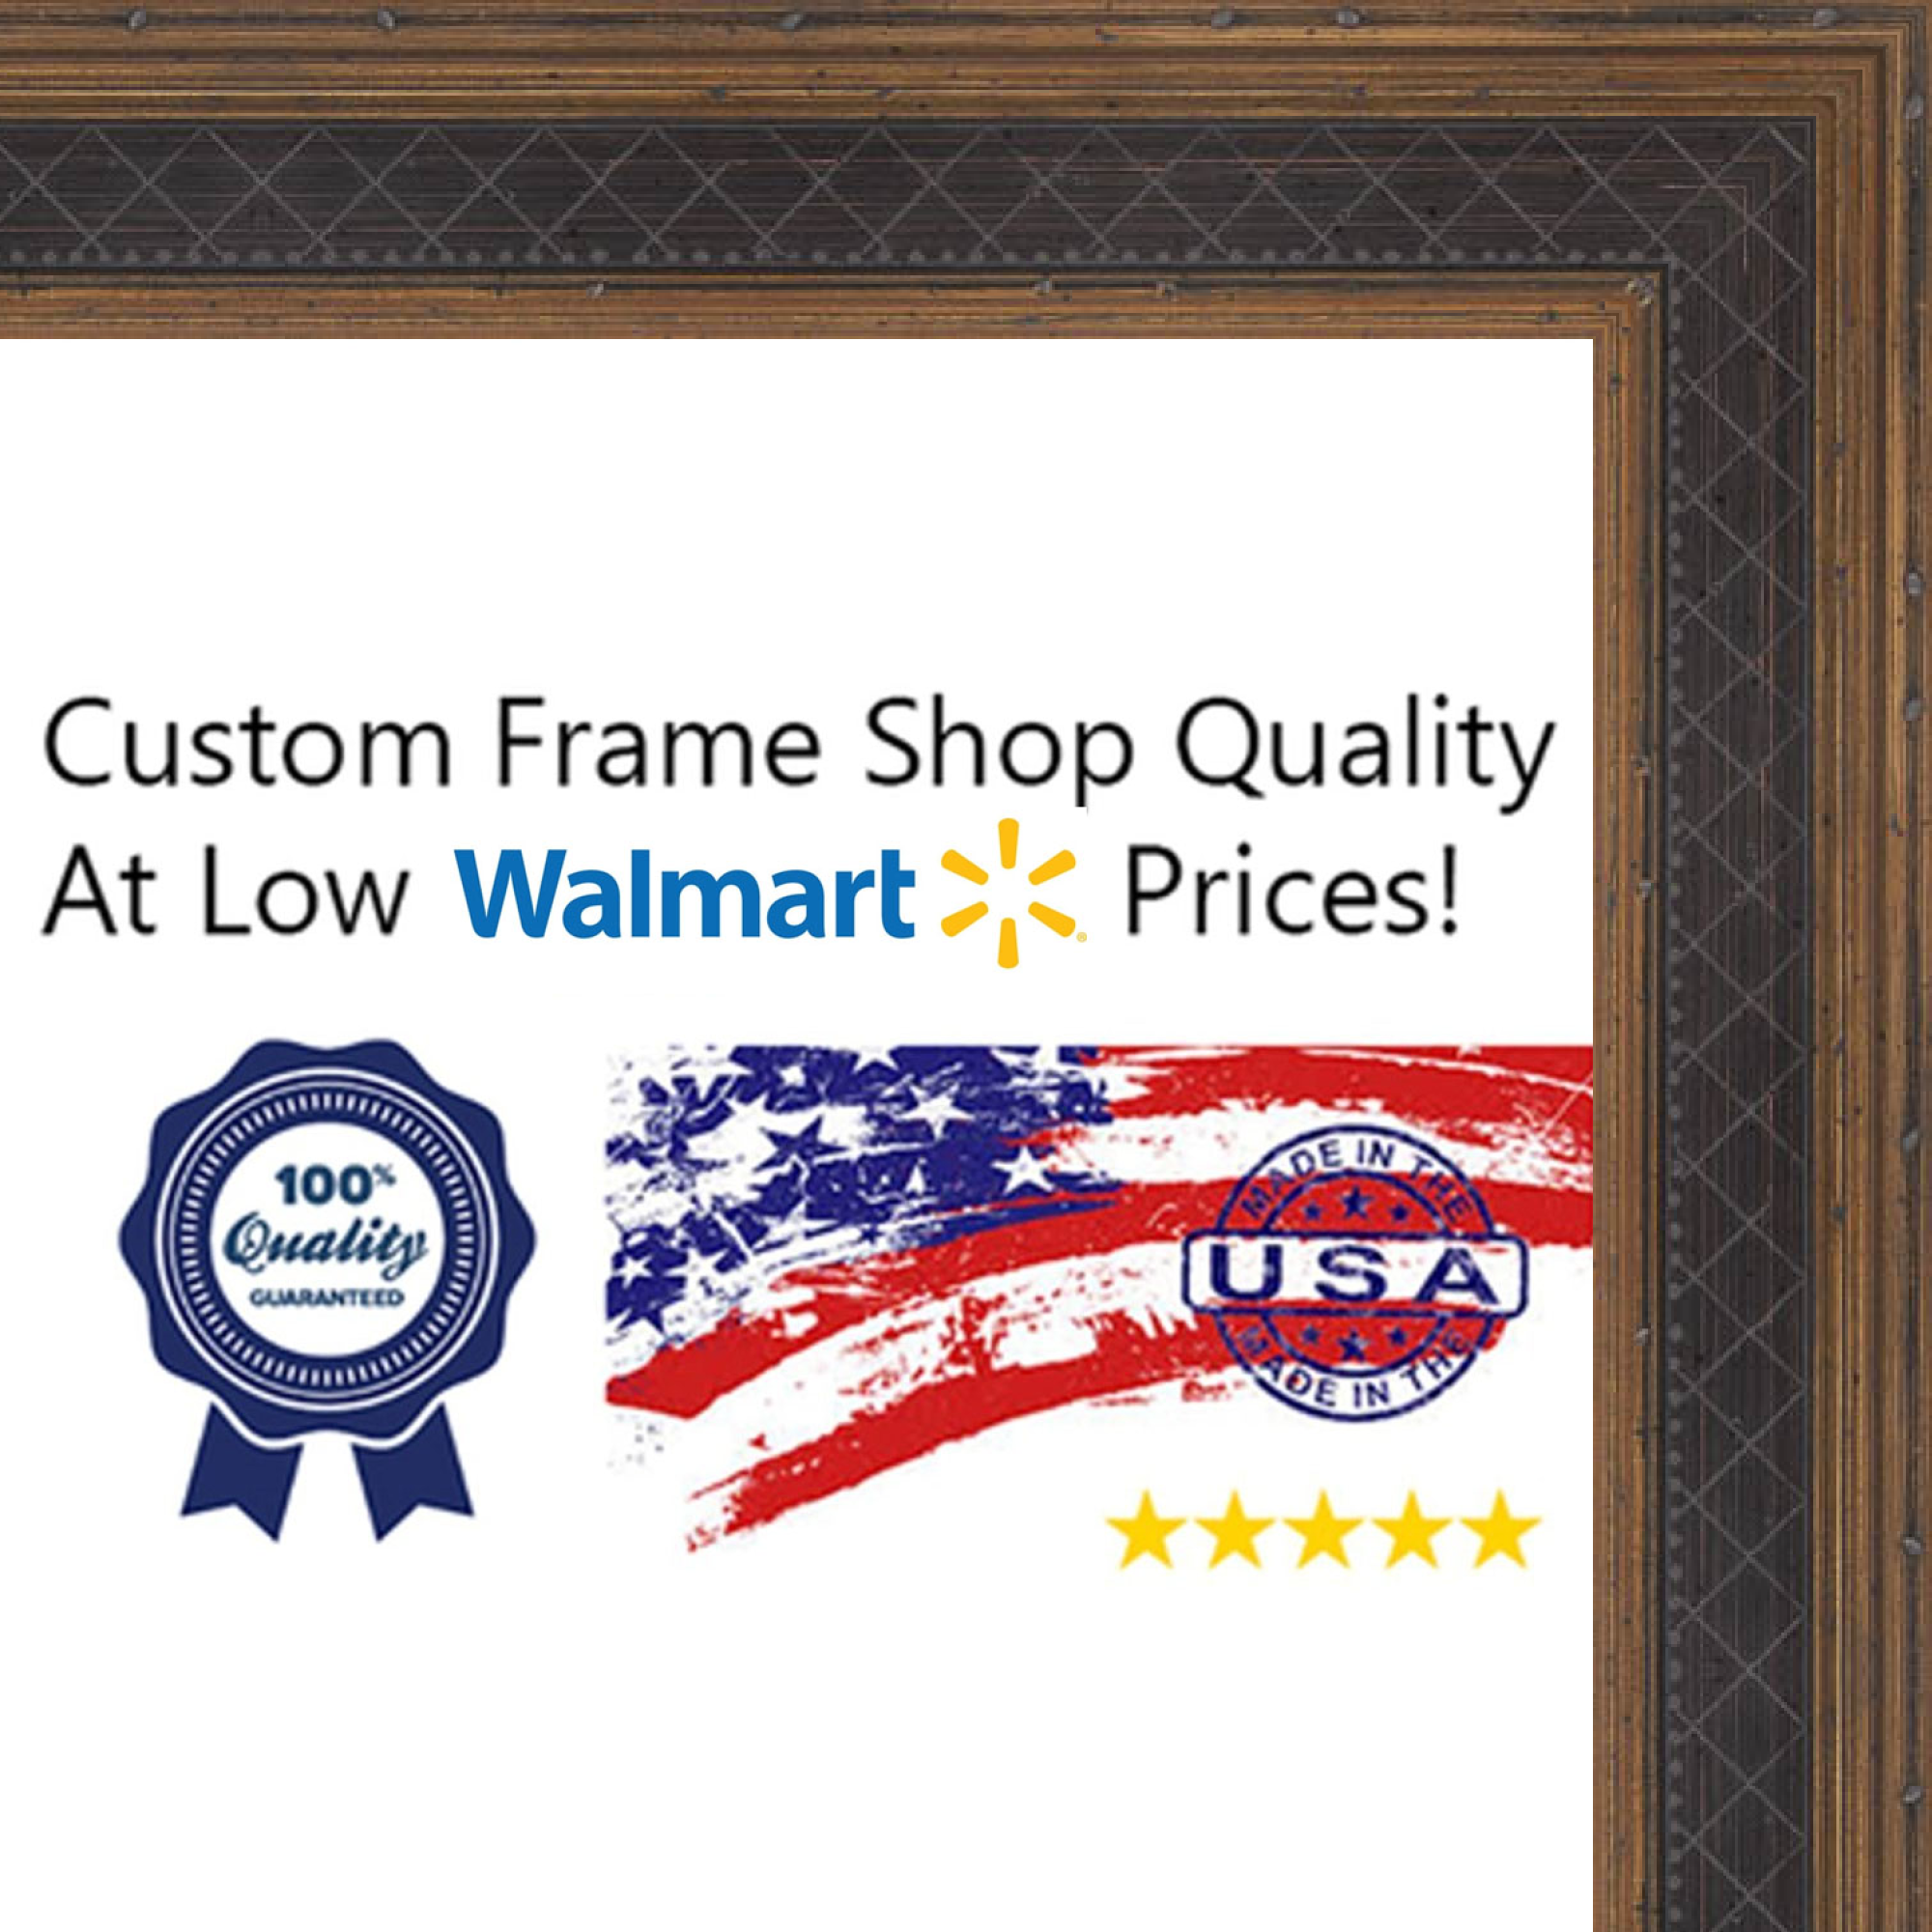 26x36 - 26 x 36 Antique Gold and Navy Solid Wood Frame with UV Framer's Acrylic & Foam Board Backing - Great For a